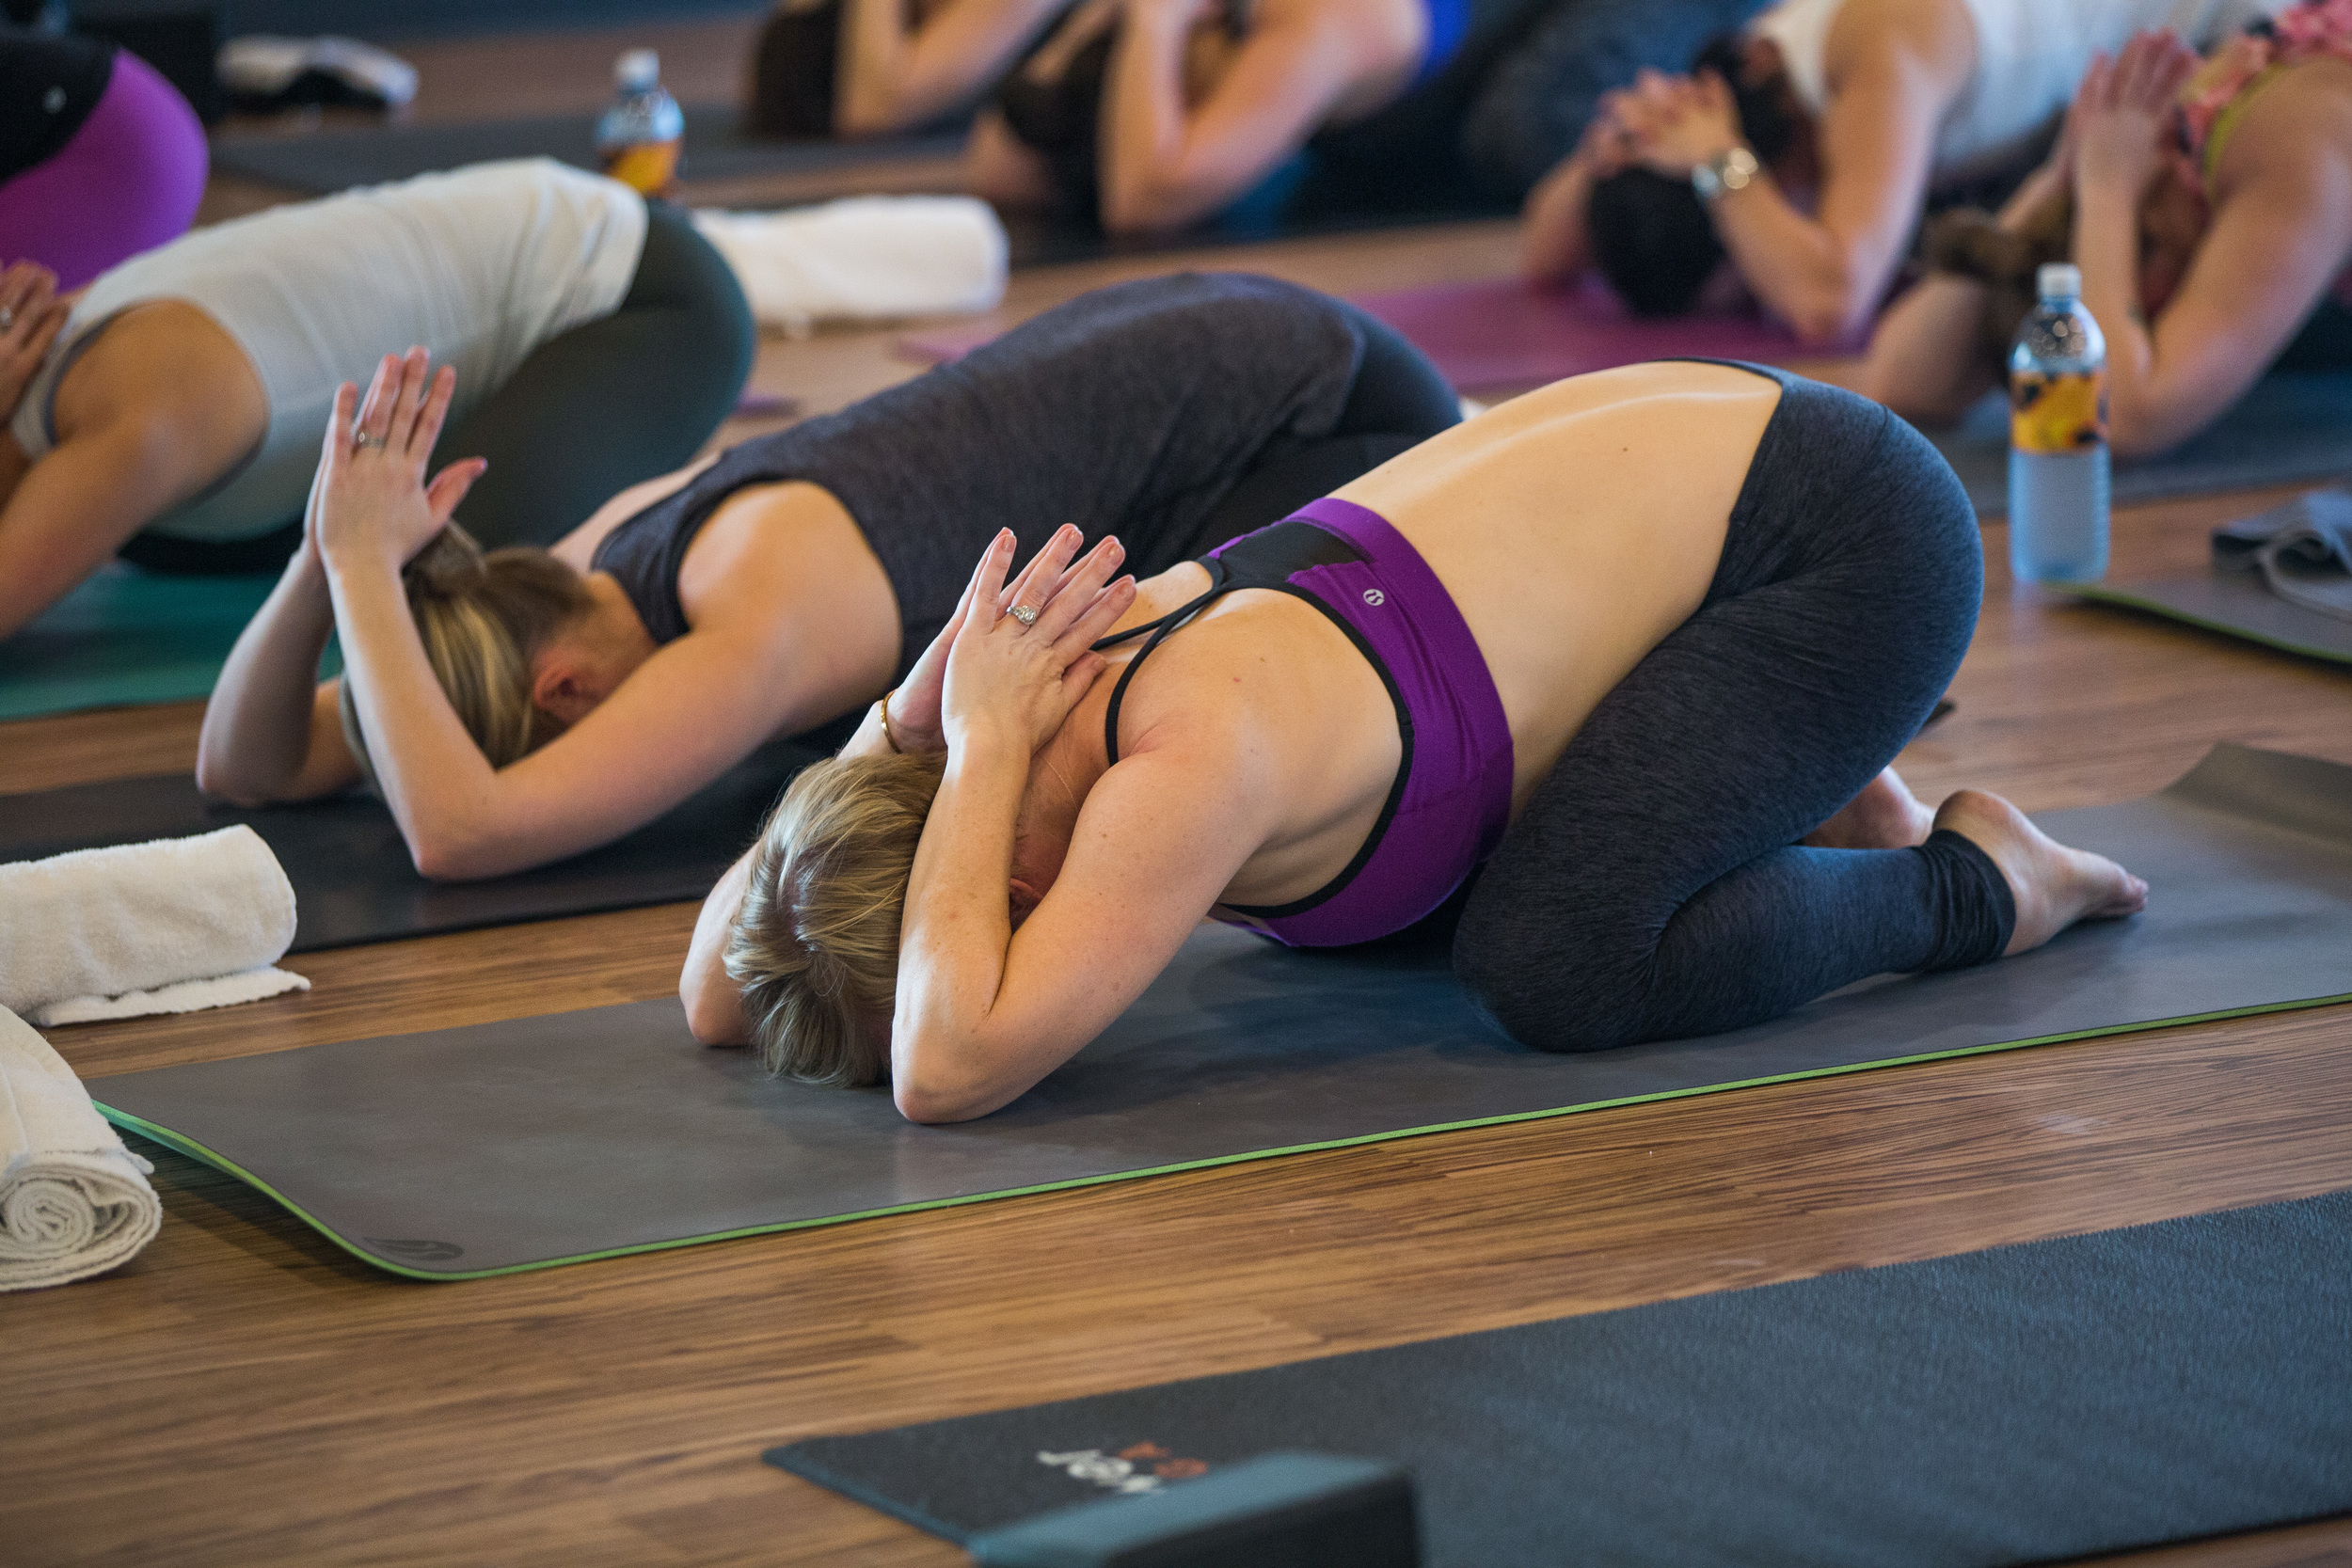 Lululemon, Yoga, Breathe, Fitness, Yoga Studios, Yoga Studios Minneapolis, Minnesota, Fitness Blogger, Fitness REviw